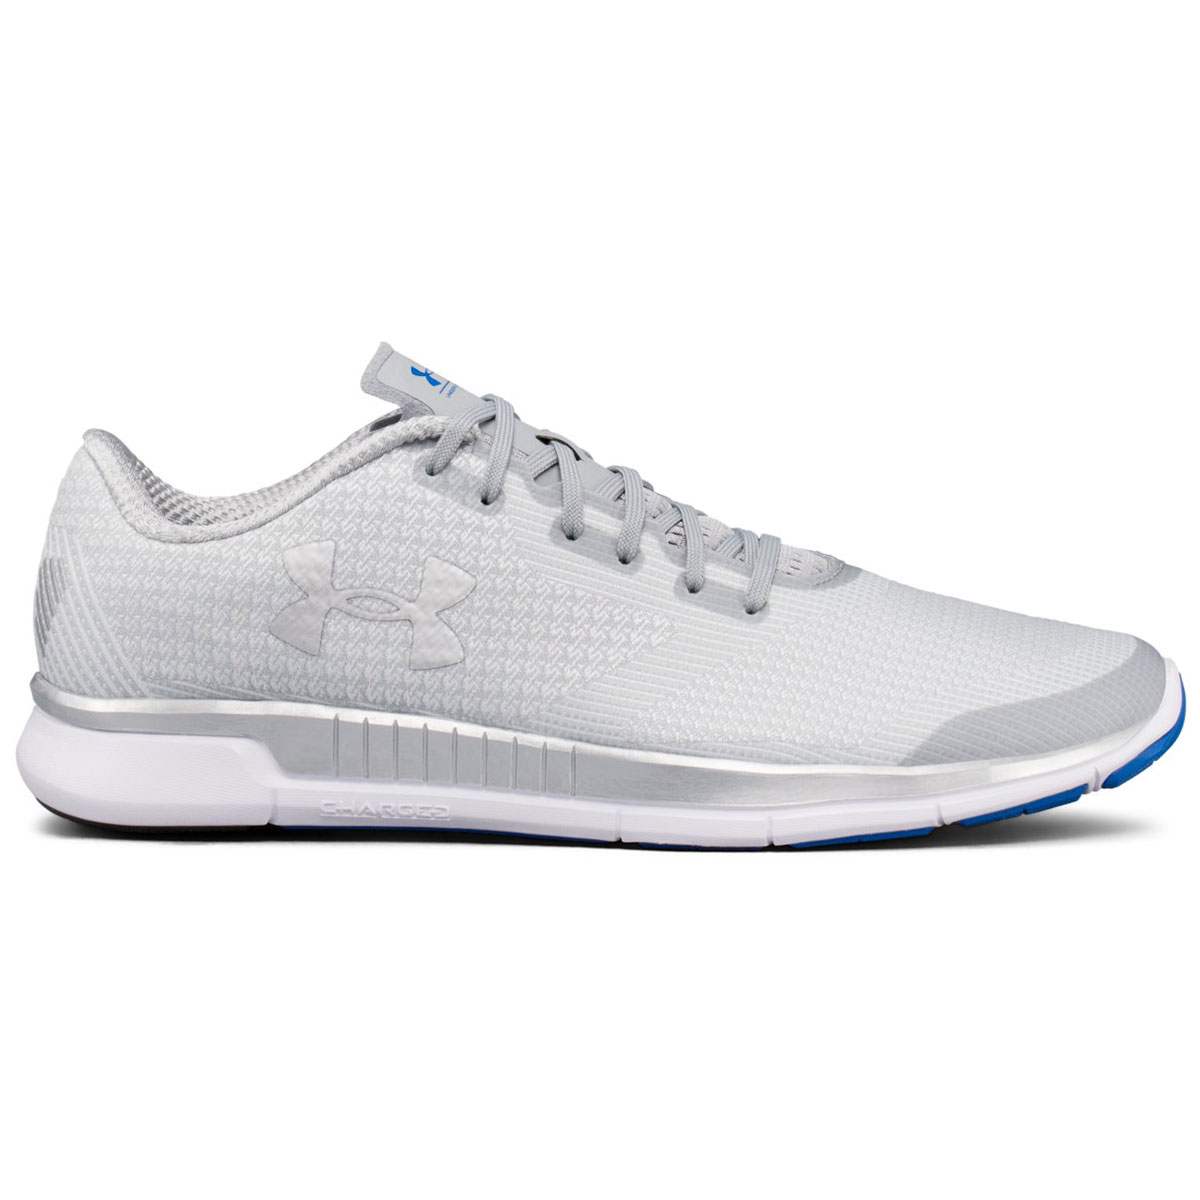 Under Armour Charged Lightning Running Shoes Footwear Sports ... 86800c5962c2